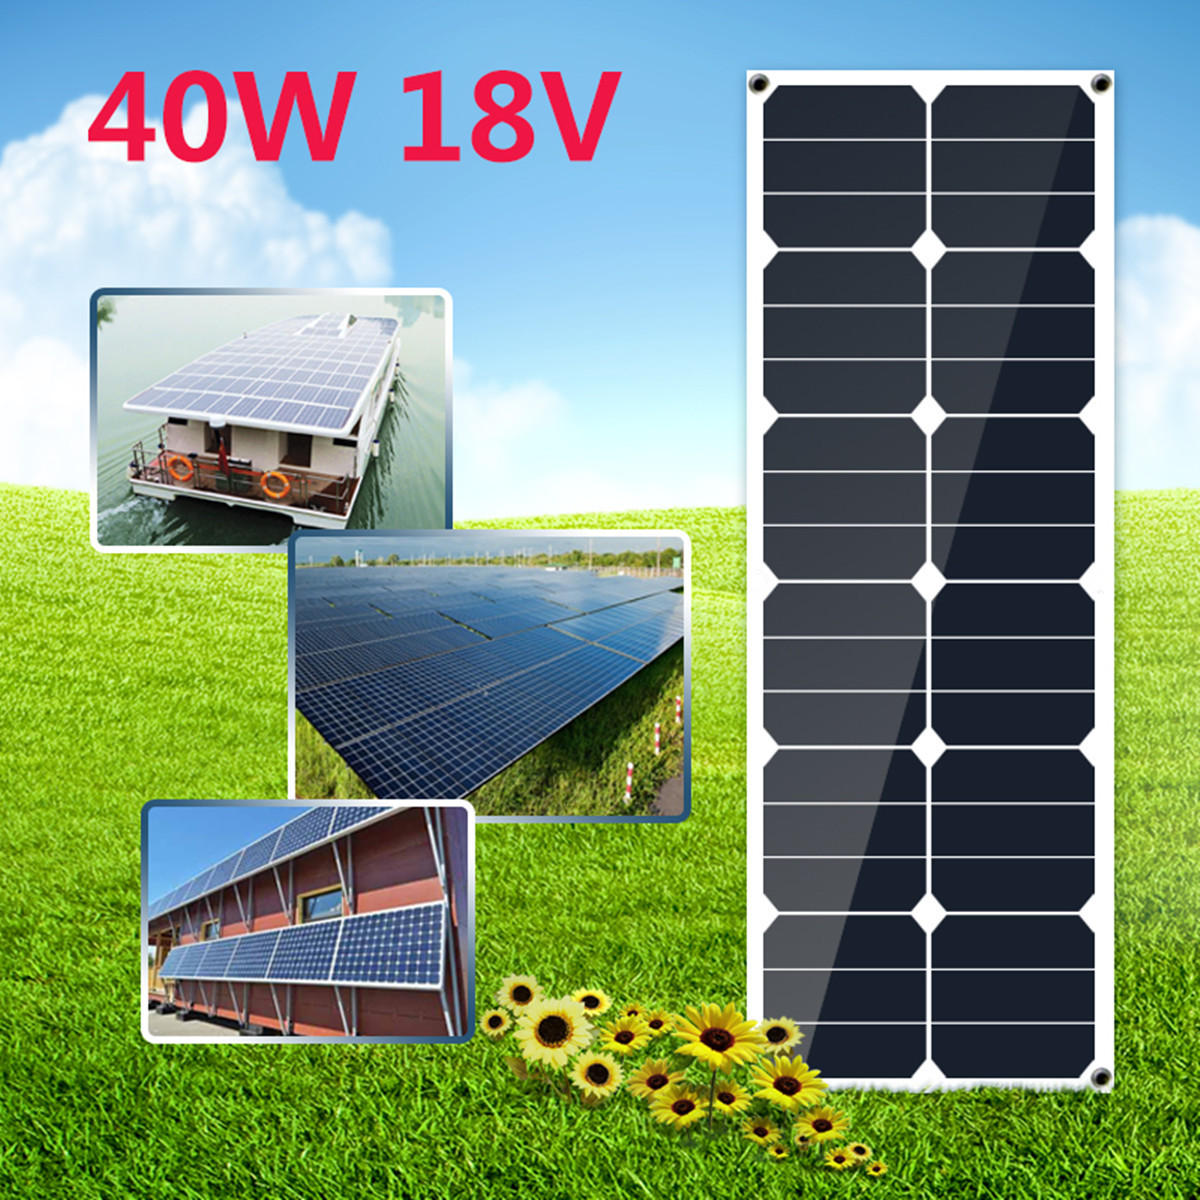 KINCO Flexible Solar Panel Plate 40W 18V Solar Charger For Car Battery 12V Sunpower Monocrystalline Silicon Cells Module KitKINCO Flexible Solar Panel Plate 40W 18V Solar Charger For Car Battery 12V Sunpower Monocrystalline Silicon Cells Module Kit